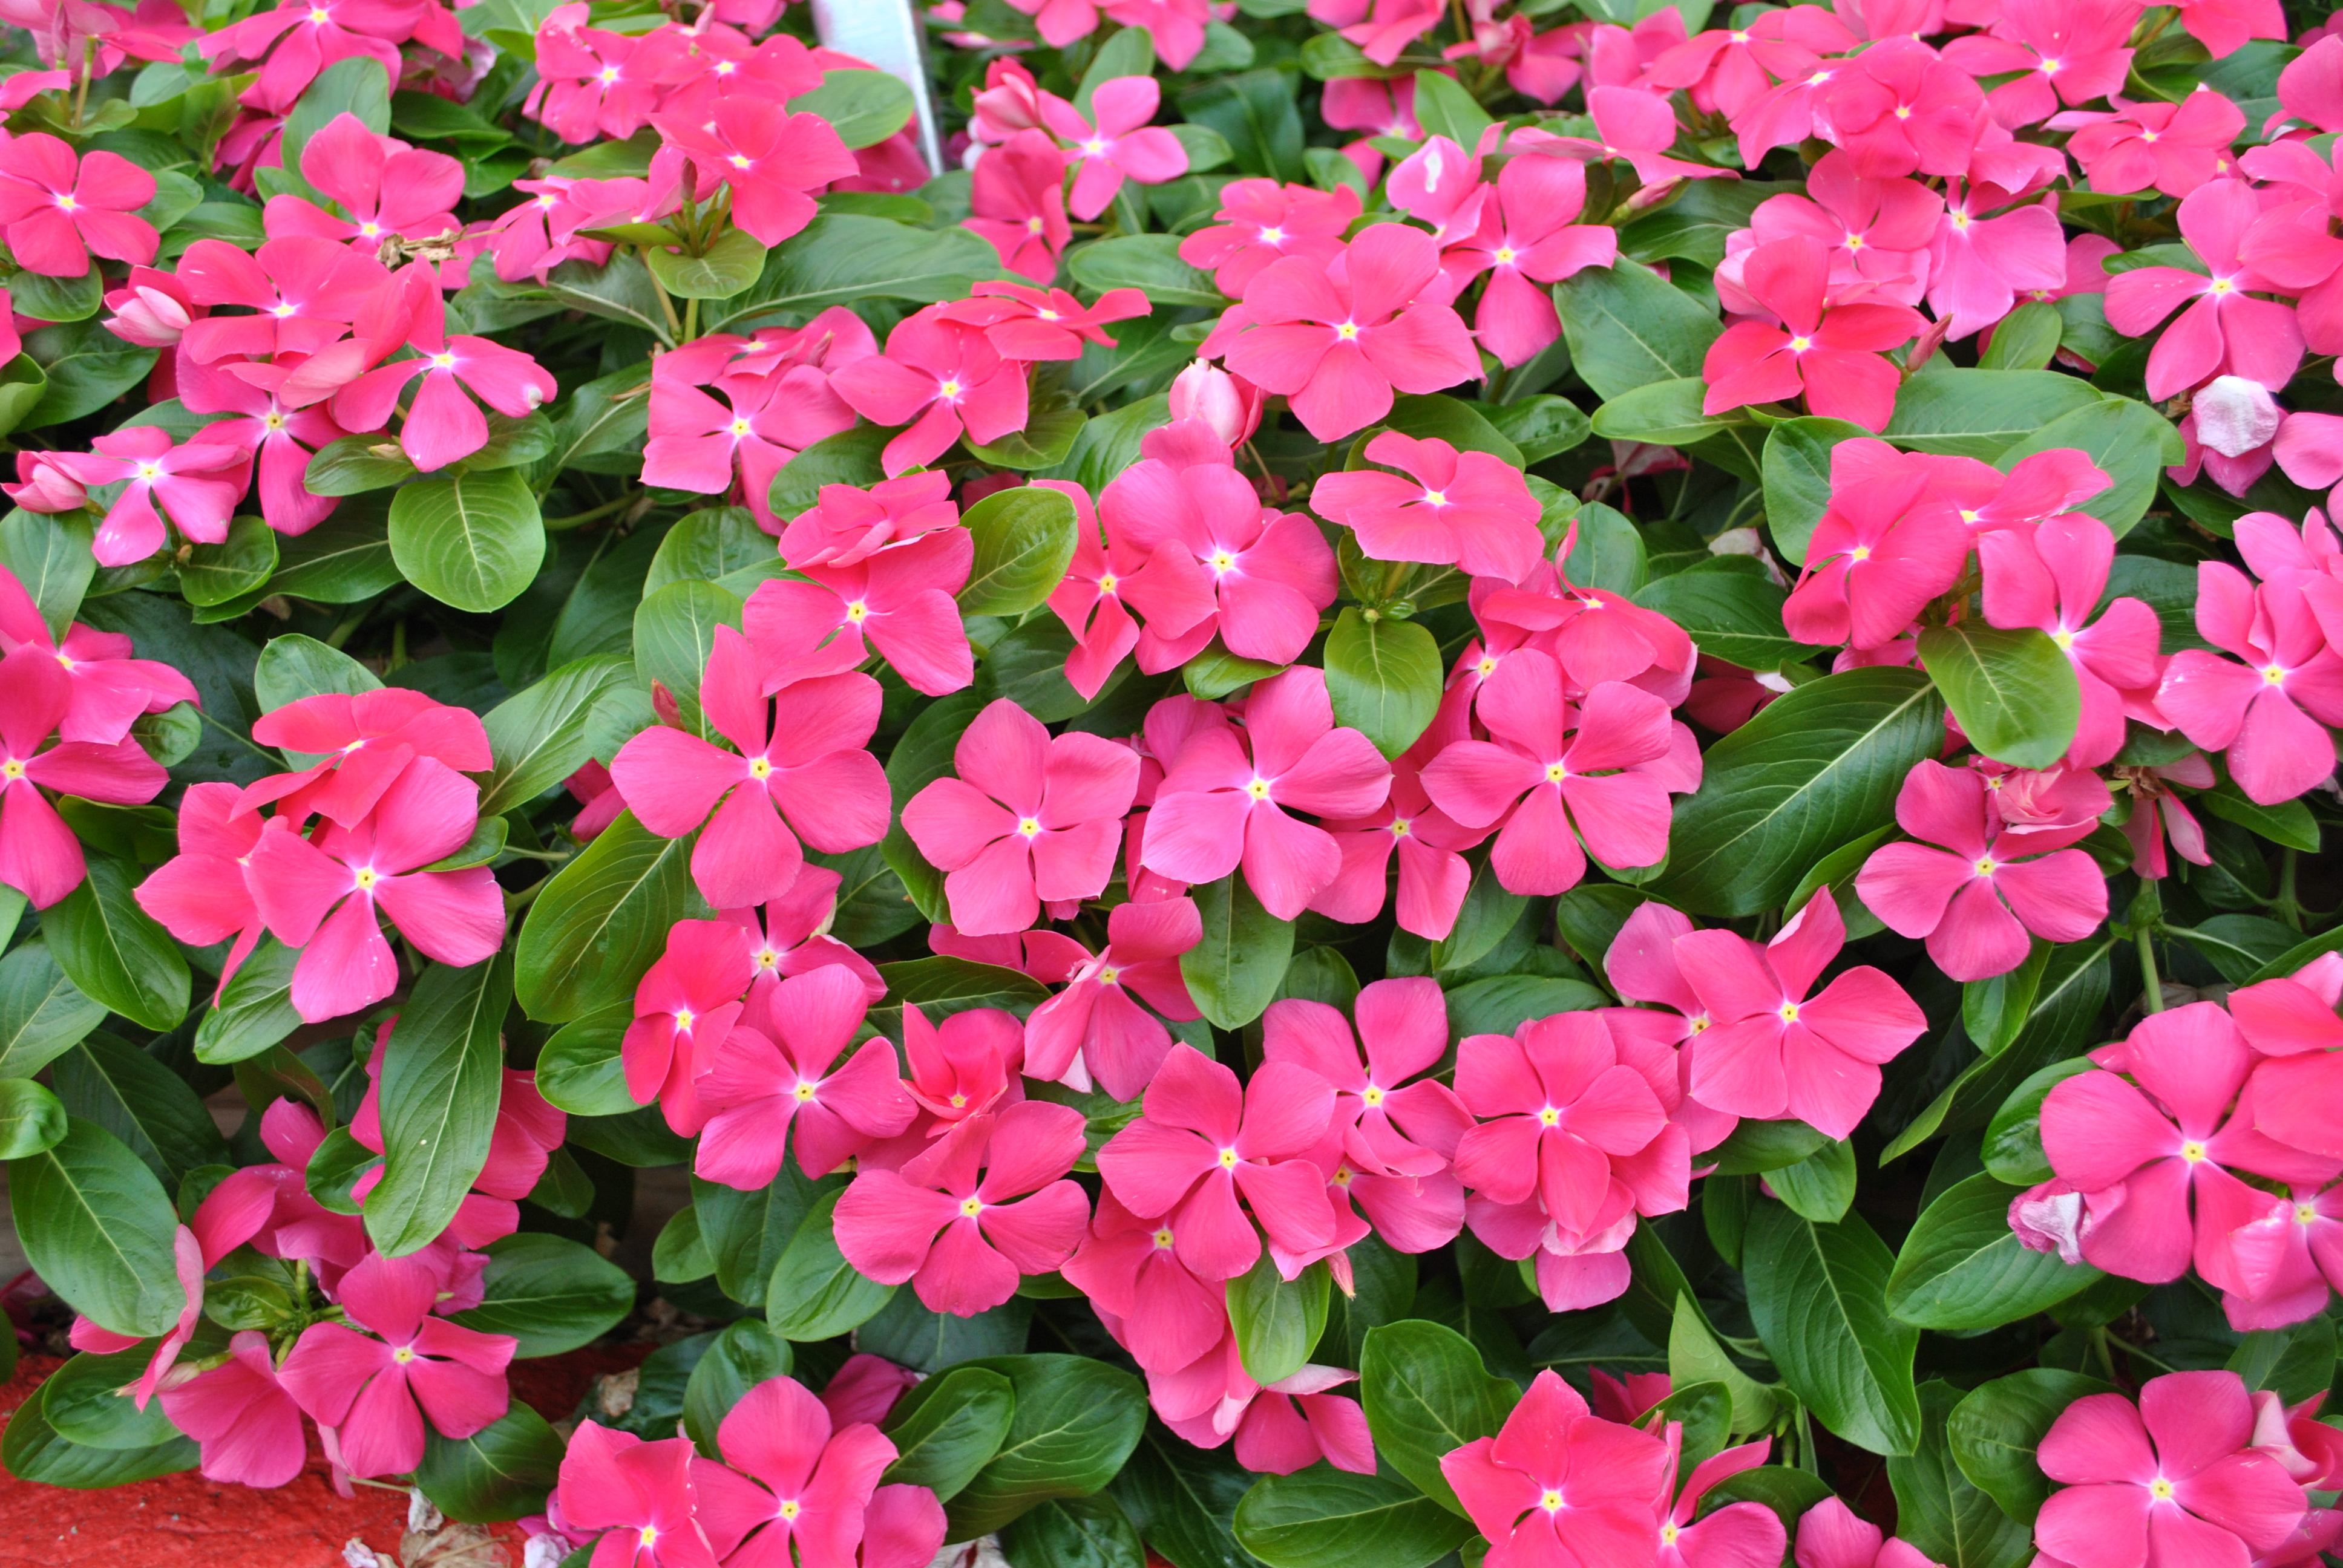 """We had 14 colors of the Cora series of Catharanthus this summer and every one of them has had outstanding performance. The plants were consistent in height and floriferousness. All tolerated the heat, humidity and irregular rains quite well."""